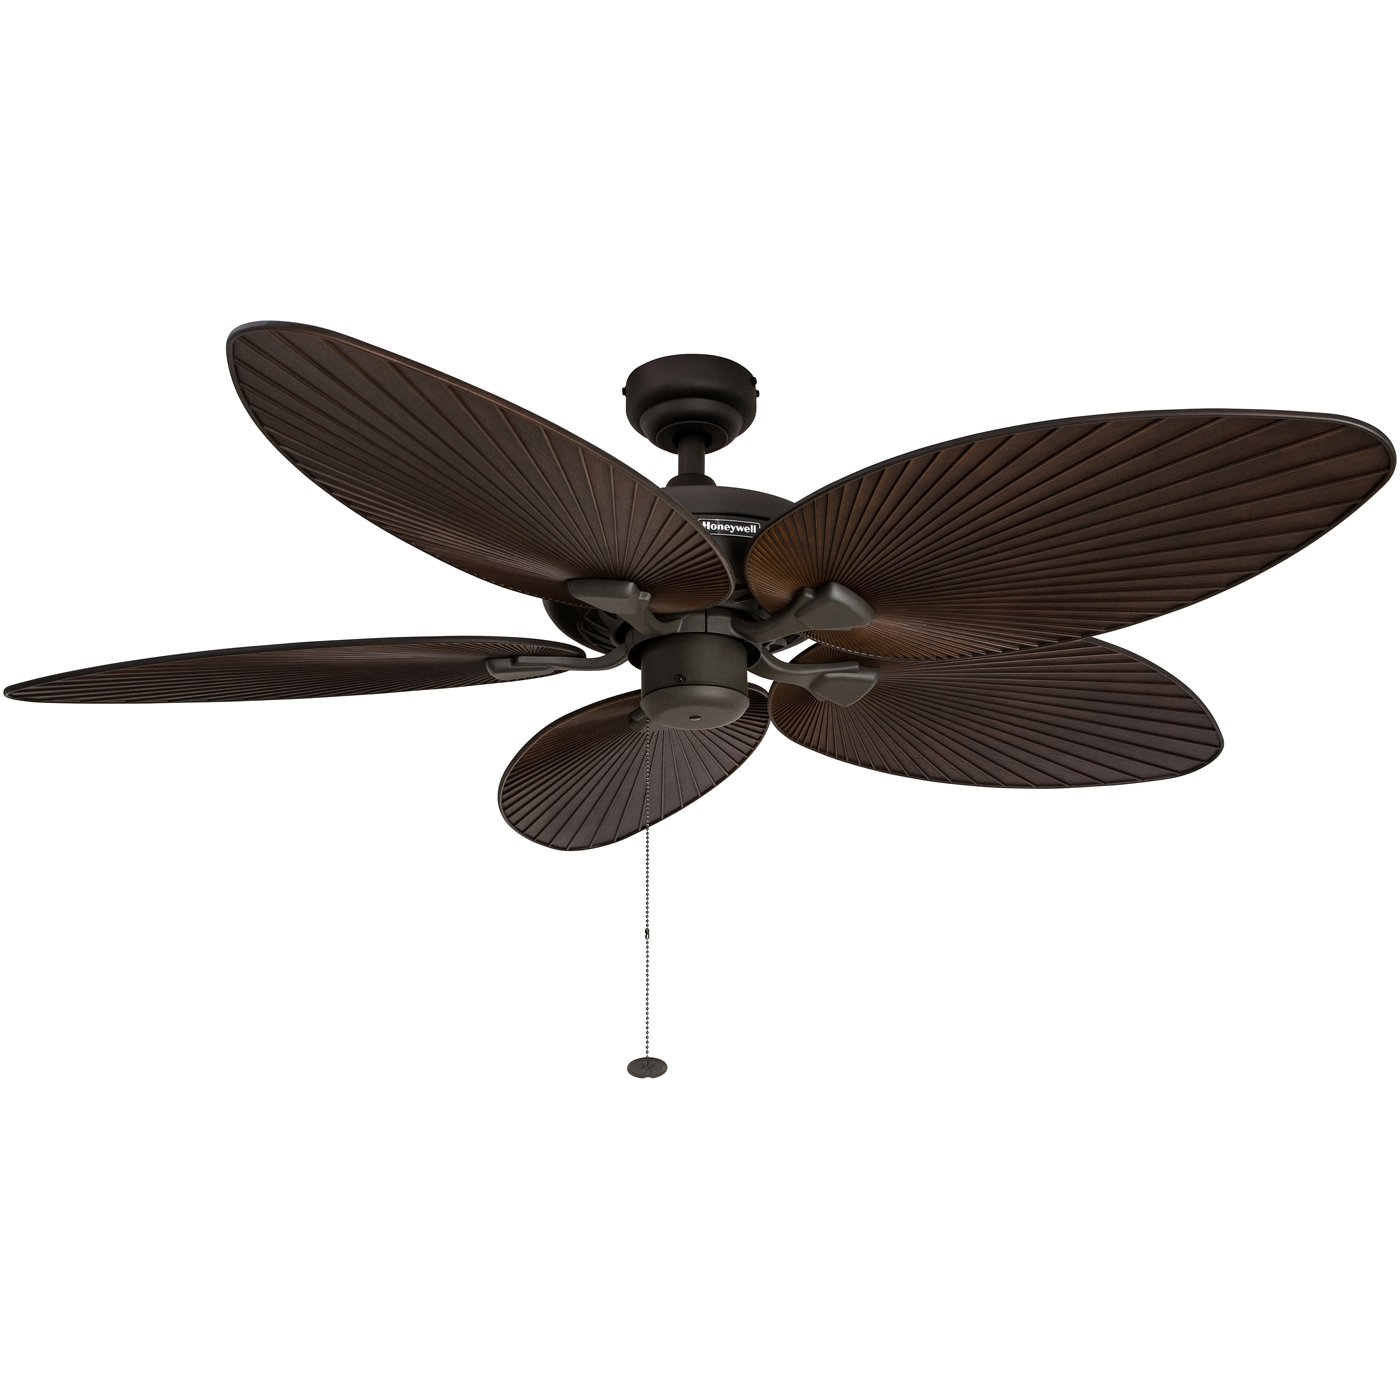 Suspended ceiling fan shroud drop light hanging best hallway kitchen suspended ceiling fan shroud drop light hanging best hallway kitchen leaf leaves aloadofball Gallery